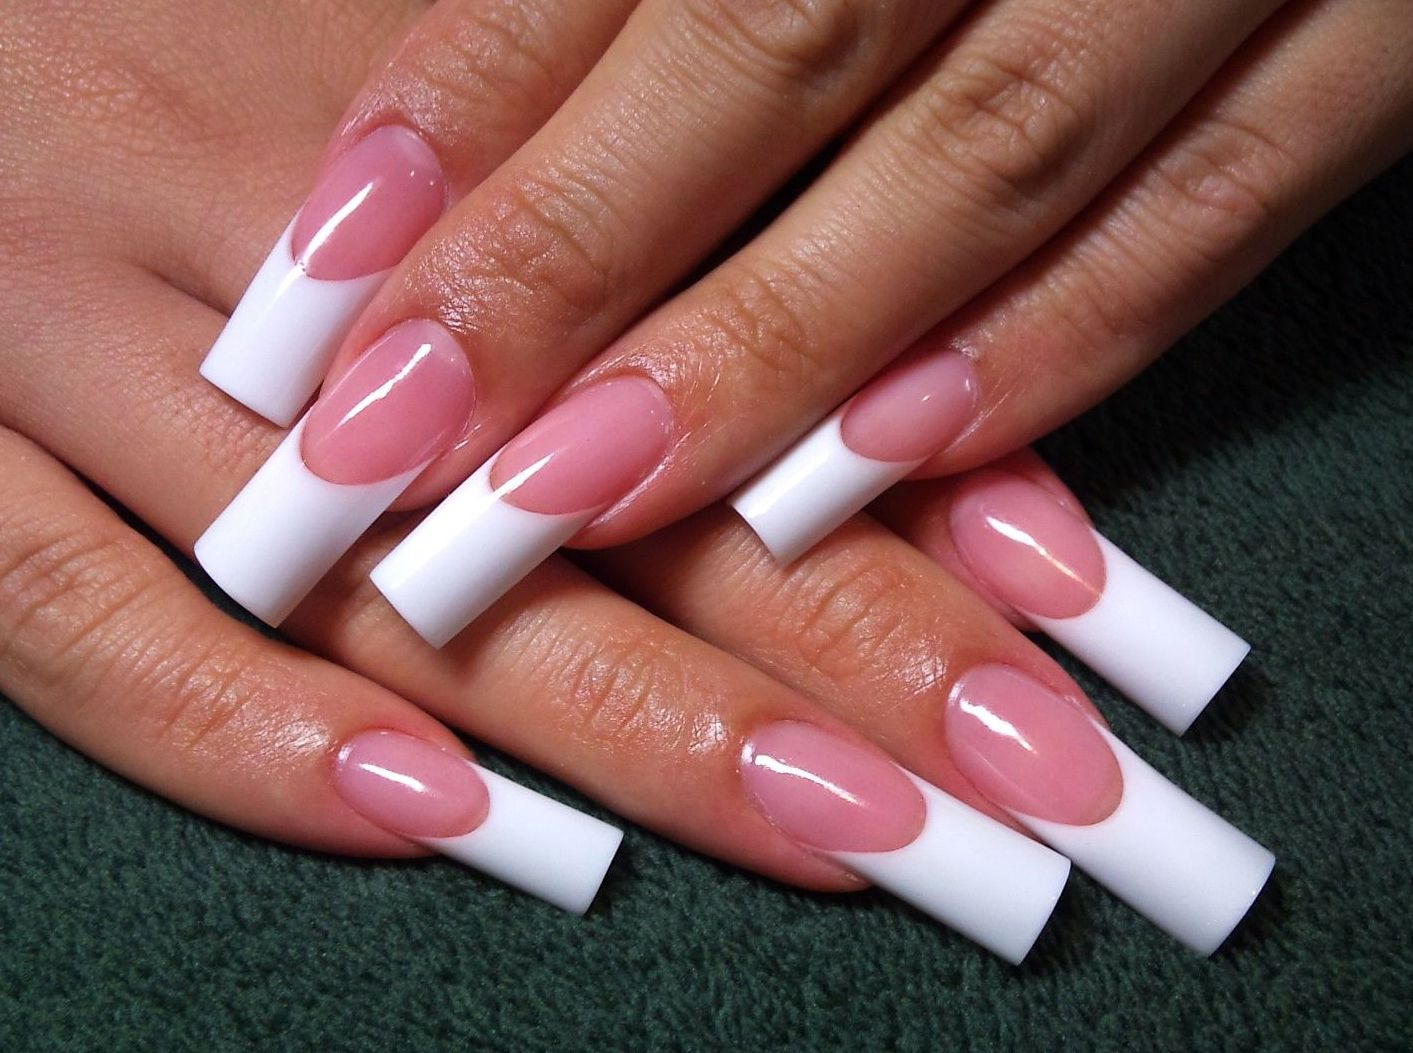 french nails | #Nails | Pinterest | Manicures, French and French ...